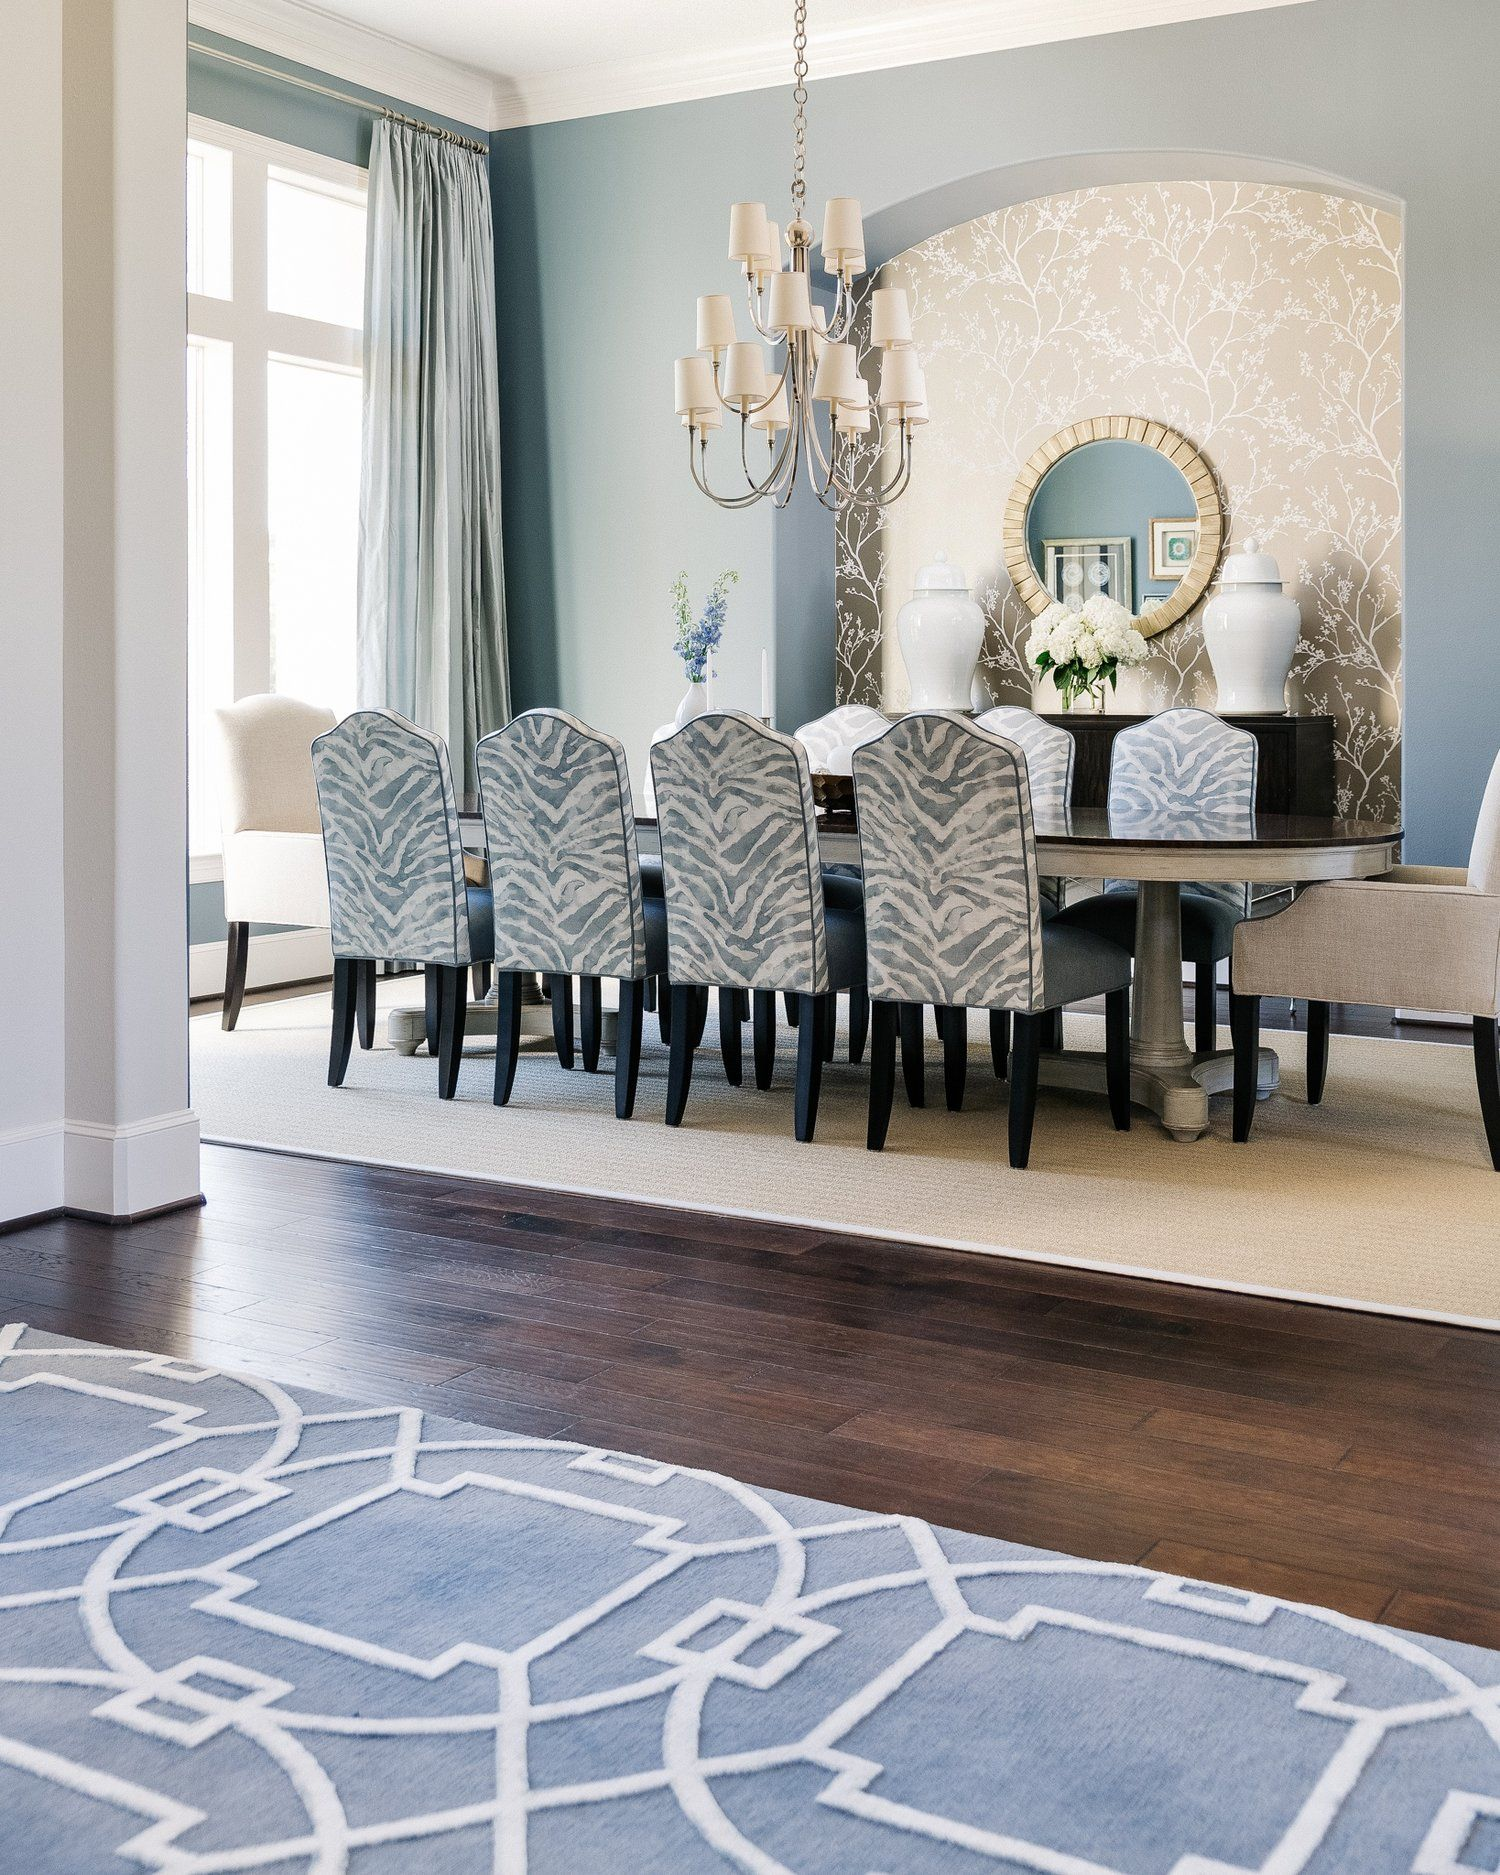 Project Reveal An Elegant Dining Room With A Fresh New Look Designed Dining Room Blue Elegant Dining Room Luxury Dining Room